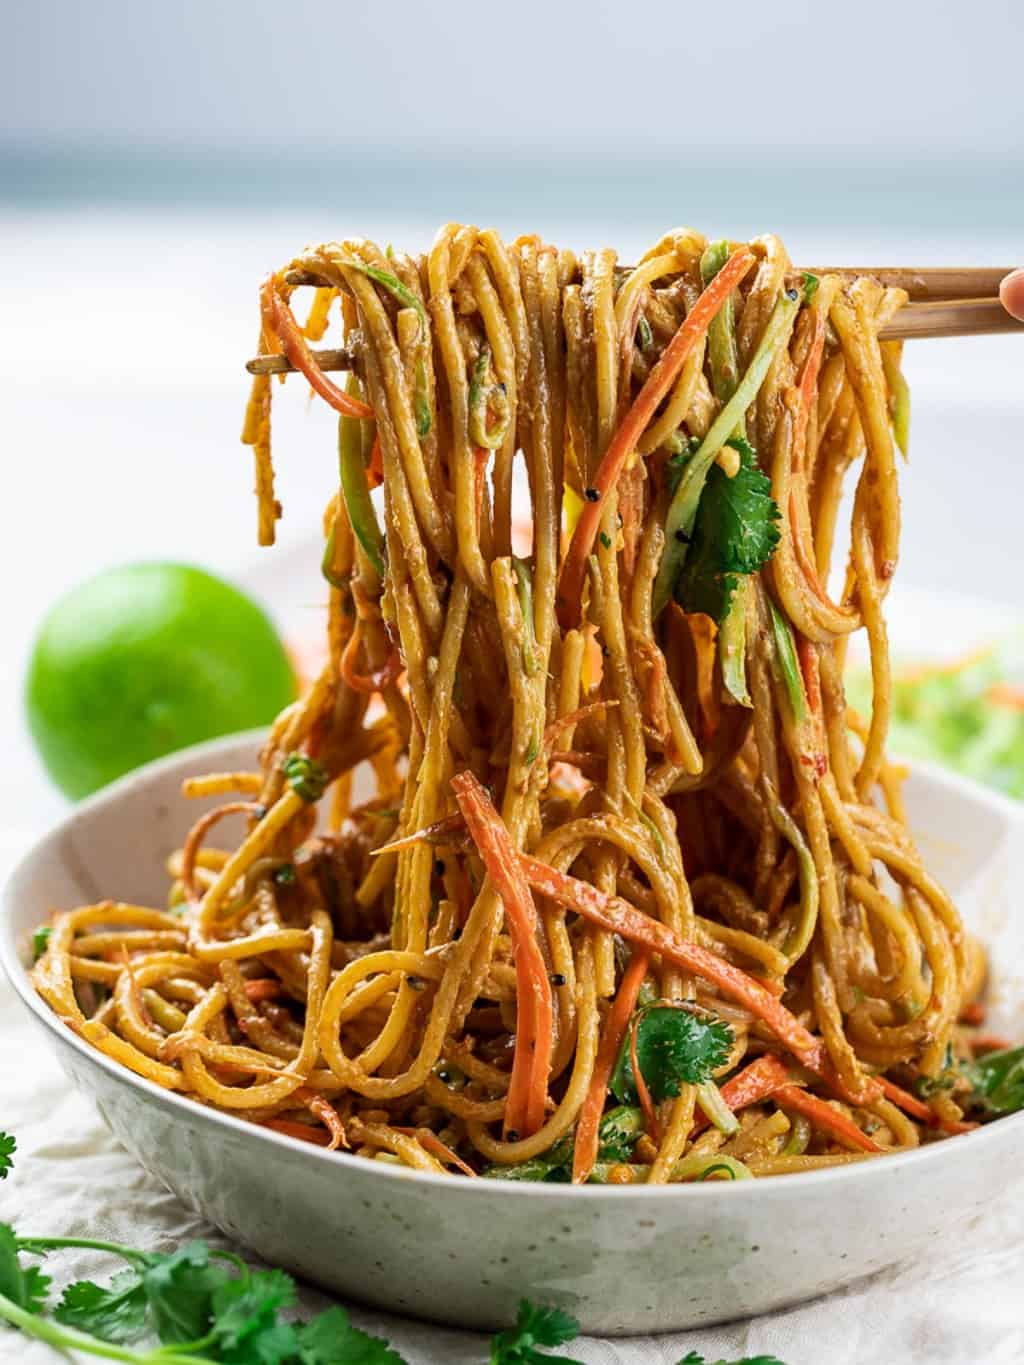 Vegan Thai noodles made with peanut butter and spaghetti